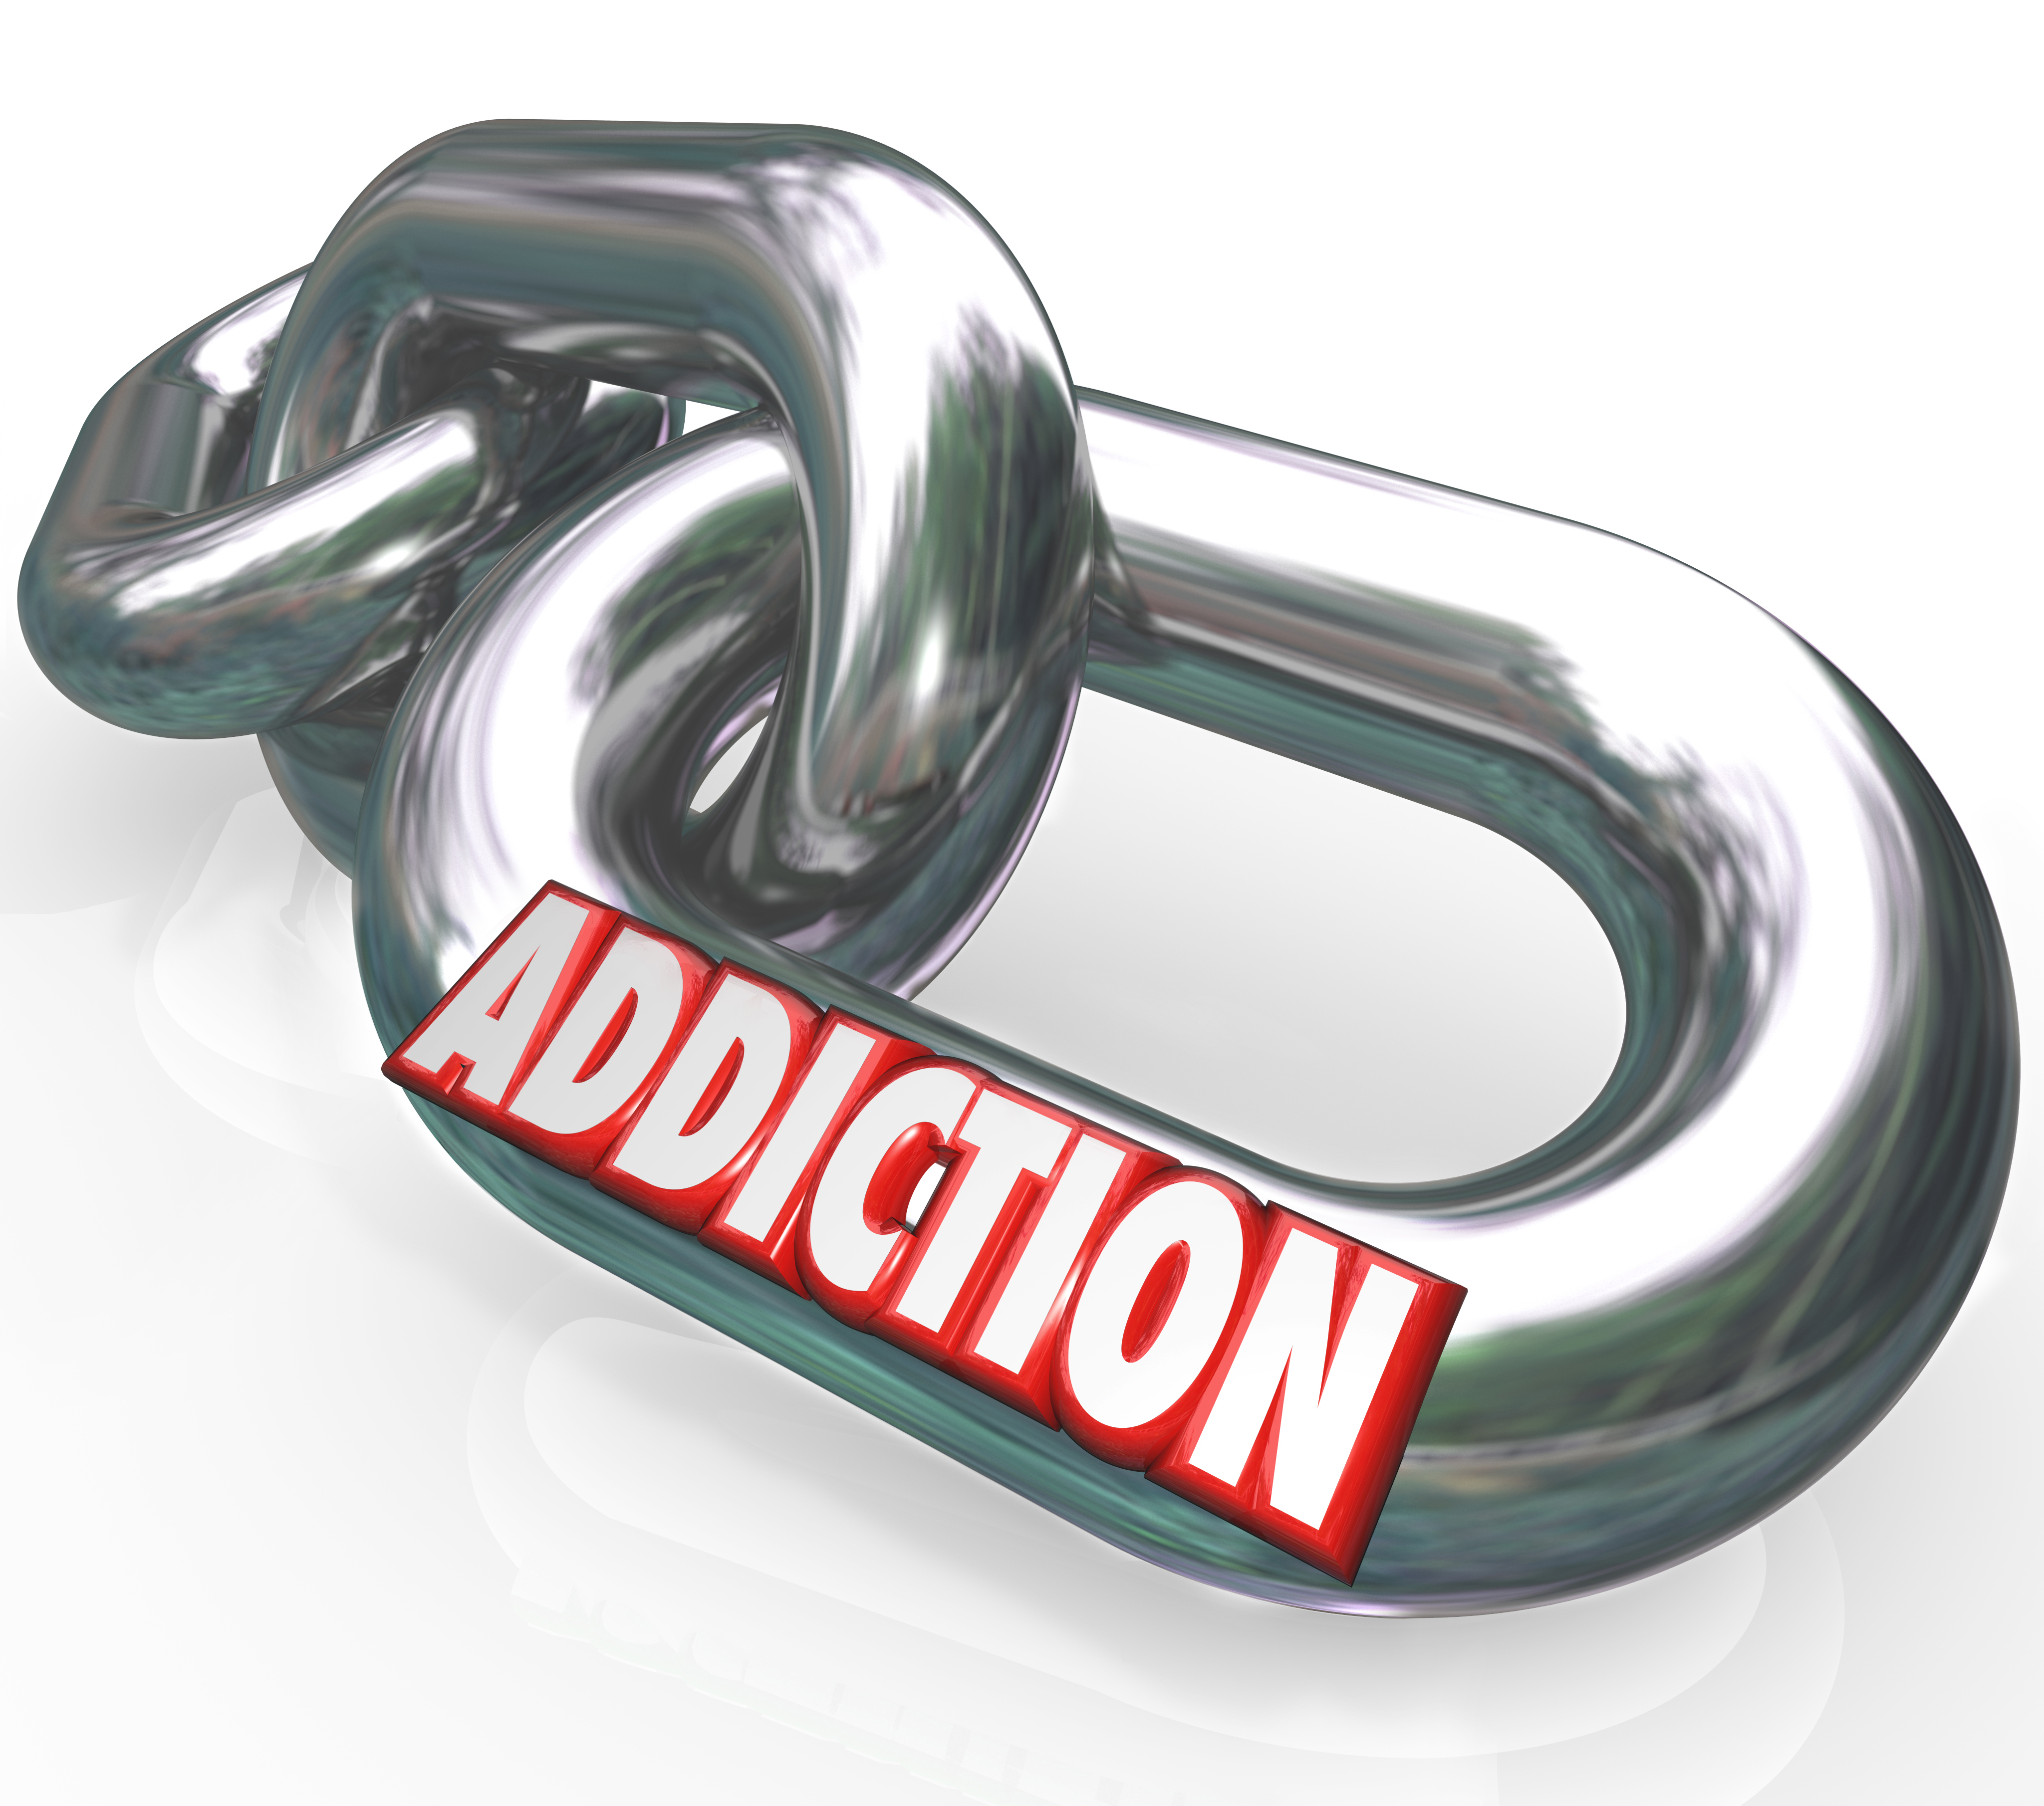 Options Trading: Addiction and Dangers